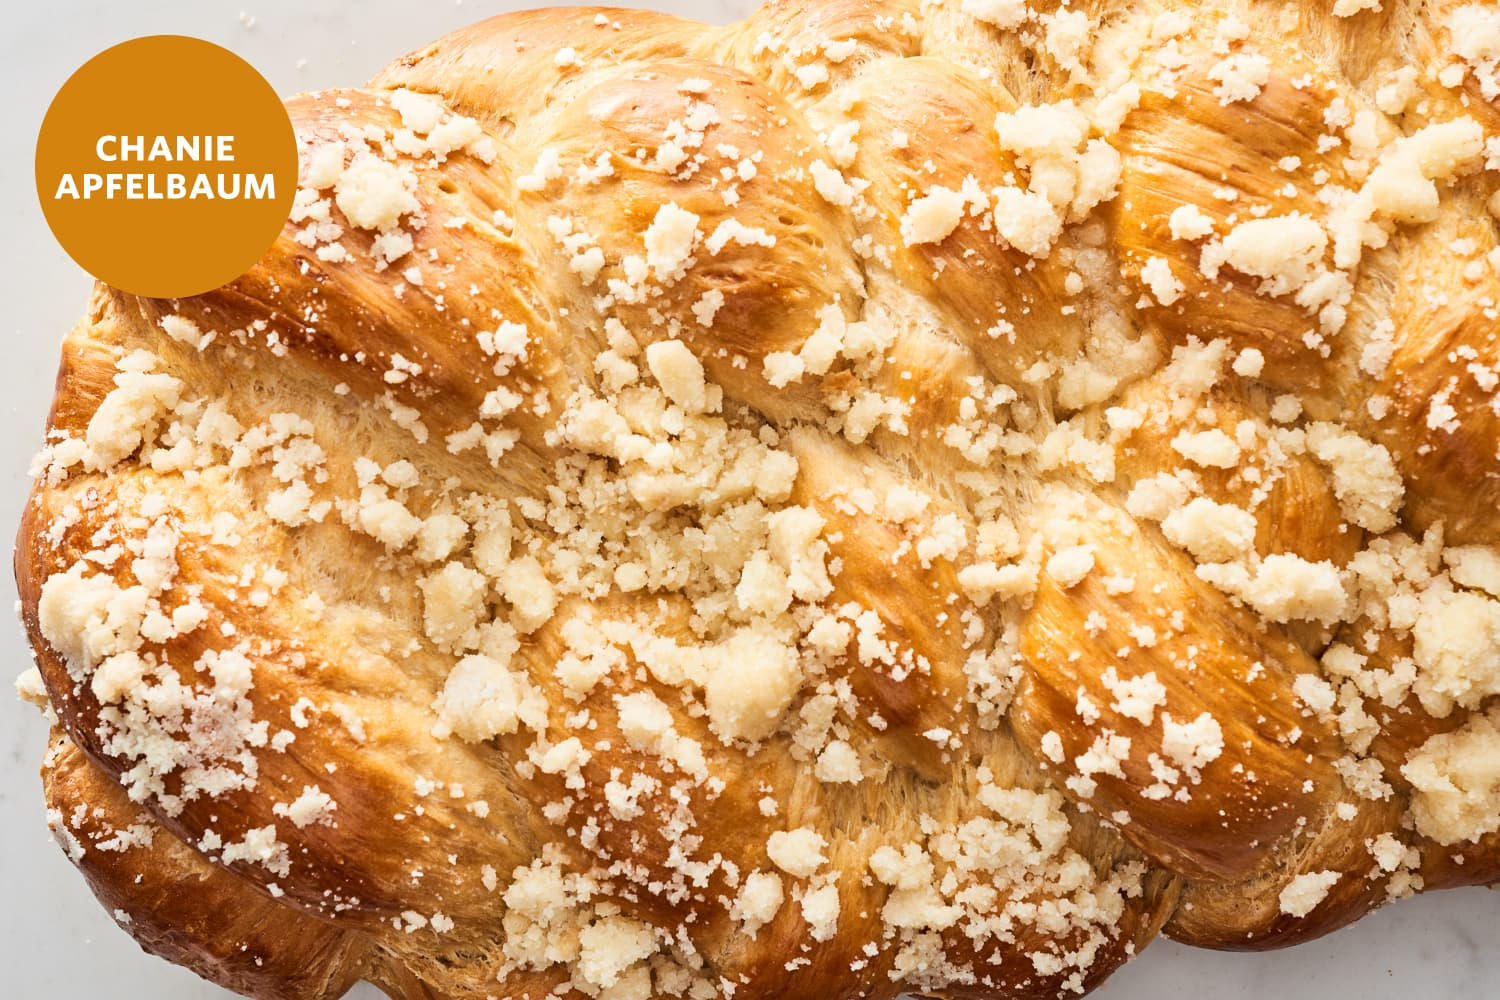 I've Been Making Challah for Decades, and This Streusel-Topped One Might Be My New Favorite